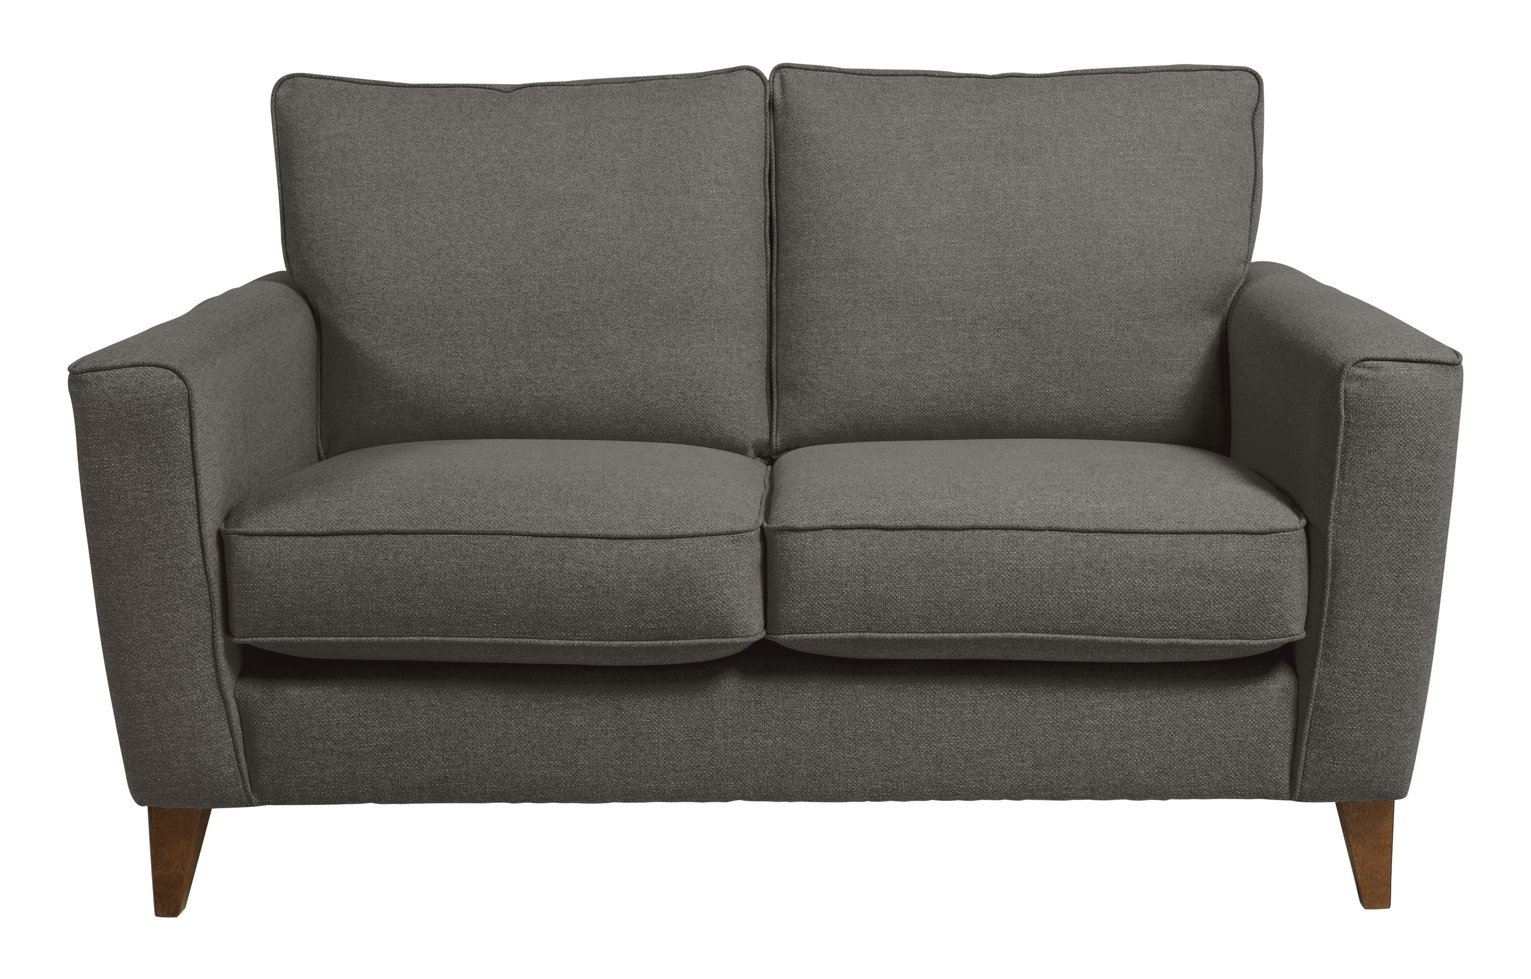 Argos Home Aspen 2 Seater Fabric Sofa - Charcoal